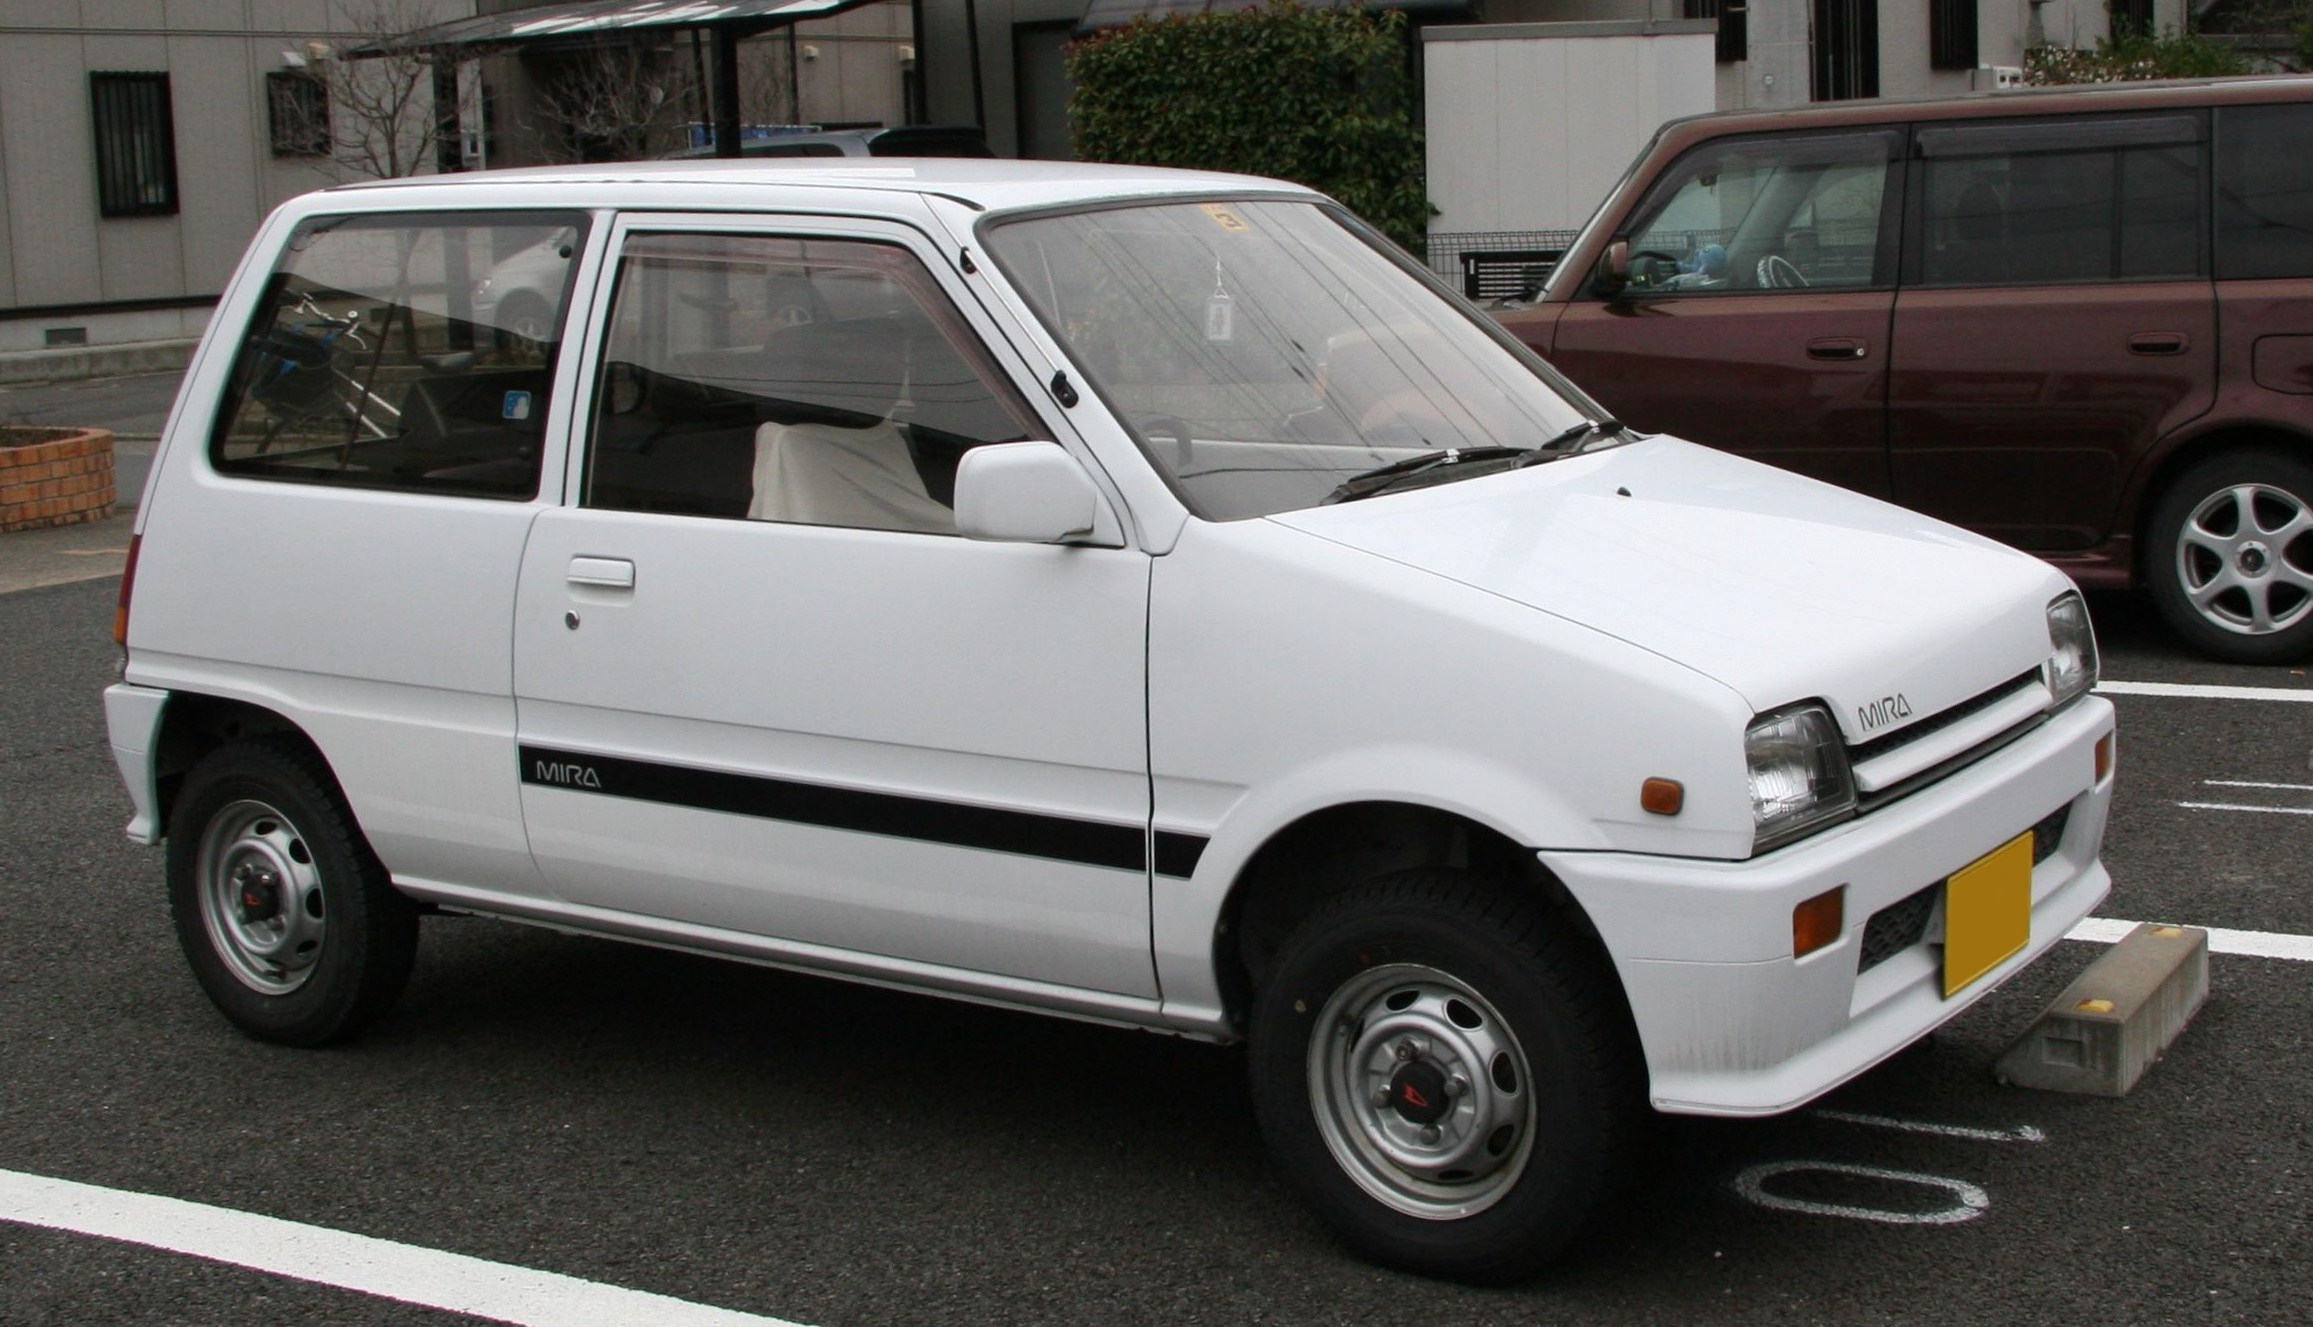 Daihatsu Related Images Start 0 Weili Automotive Network